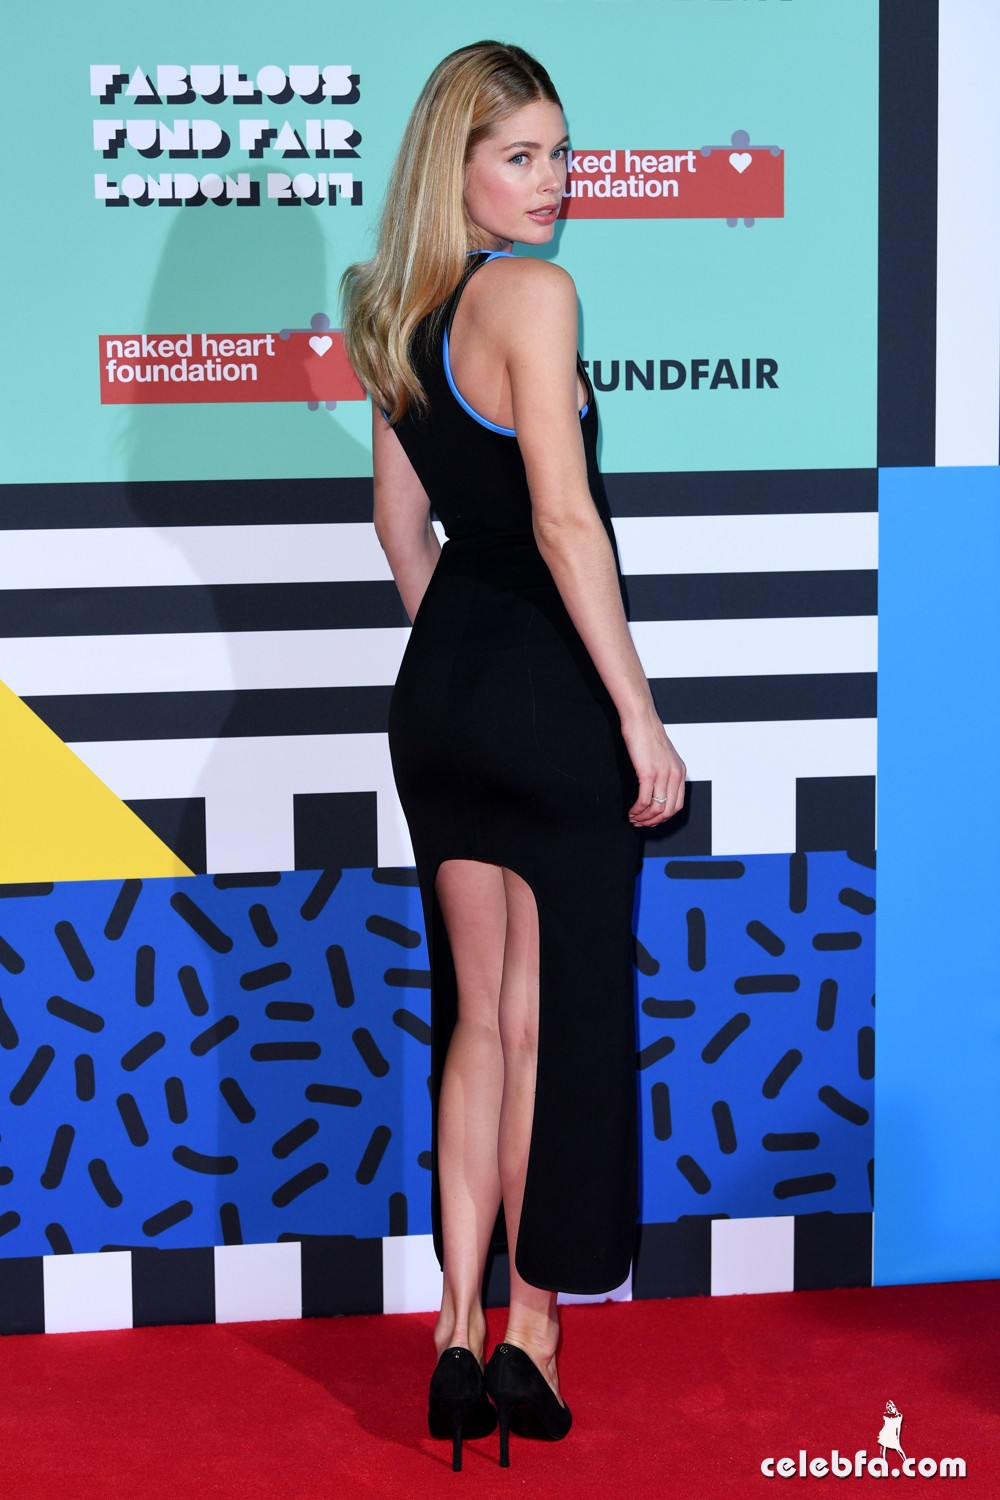 Mandatory Credit: Photo by David Fisher/REX/Shutterstock (8418507ar) Doutzen Kroes The Naked Heart Foundation Fabulous Fund Fair, Roundhouse, London, UK - 21 Feb 2017